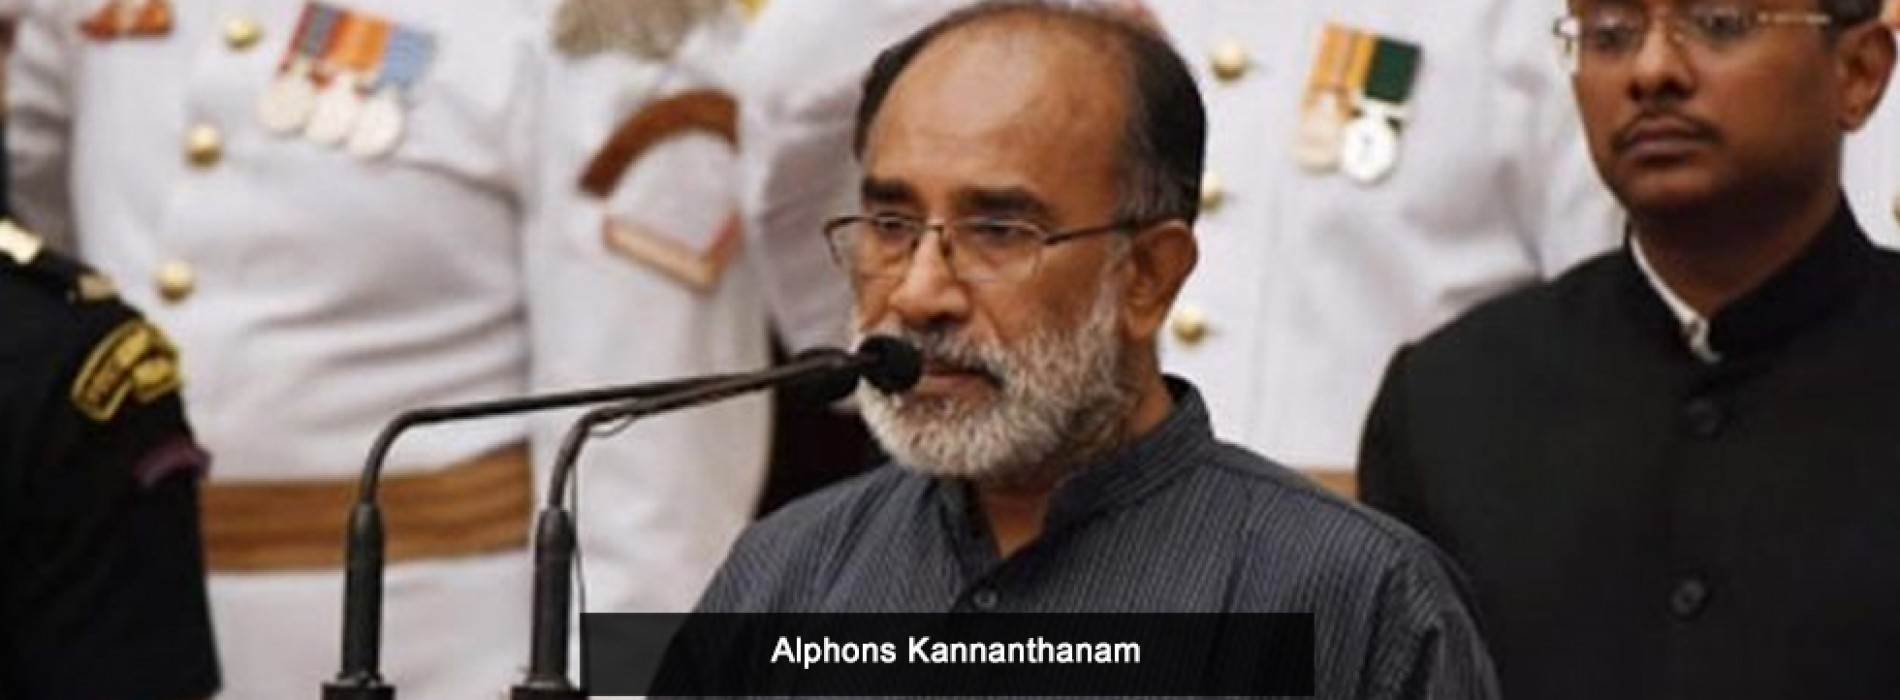 Alphons Kannanthanam appointed as the new Minister of State (I/C) for Tourism